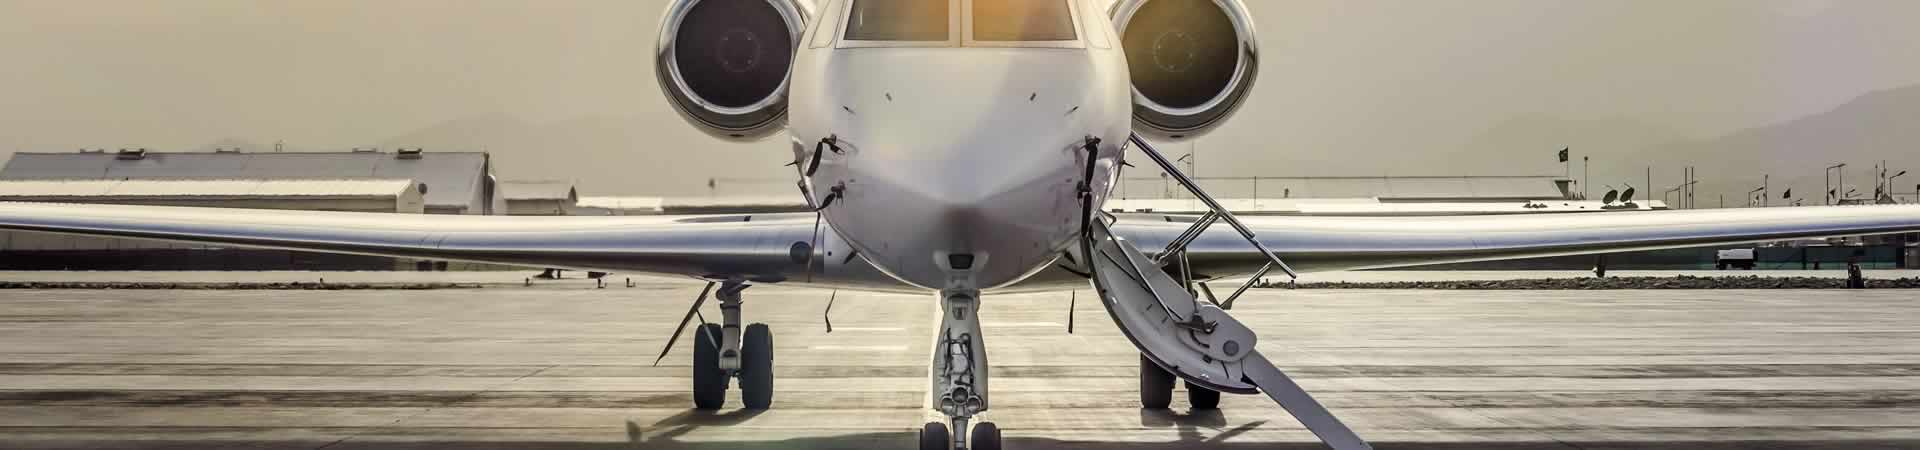 Private Jet Slider – Private Jet Nose with Door Open